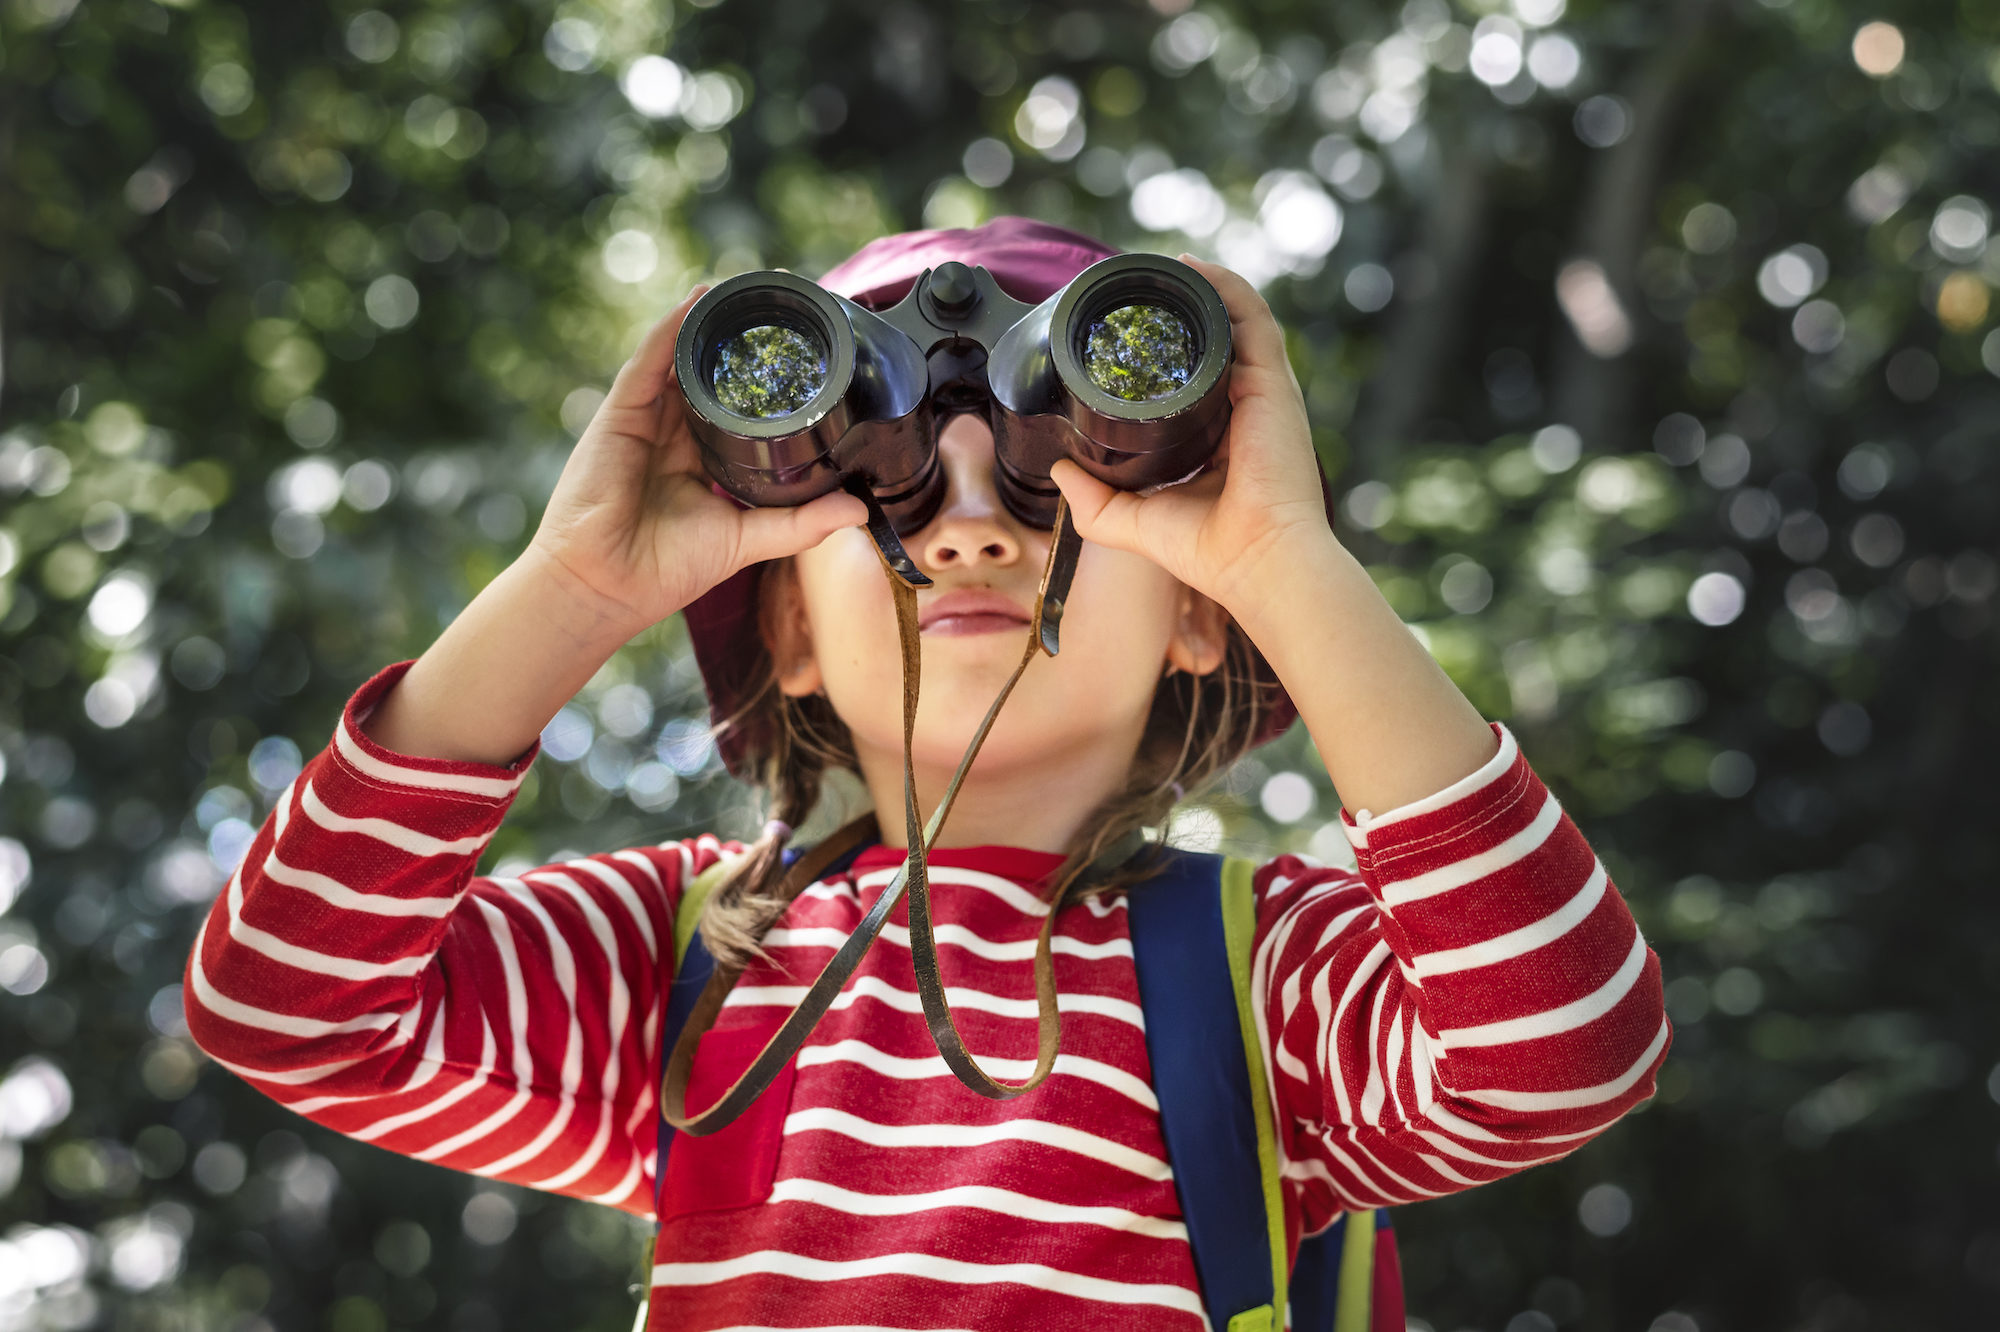 A little girl in a stripy red and white top, looking for Easter eggs in Paris, through a pair of binoculars.